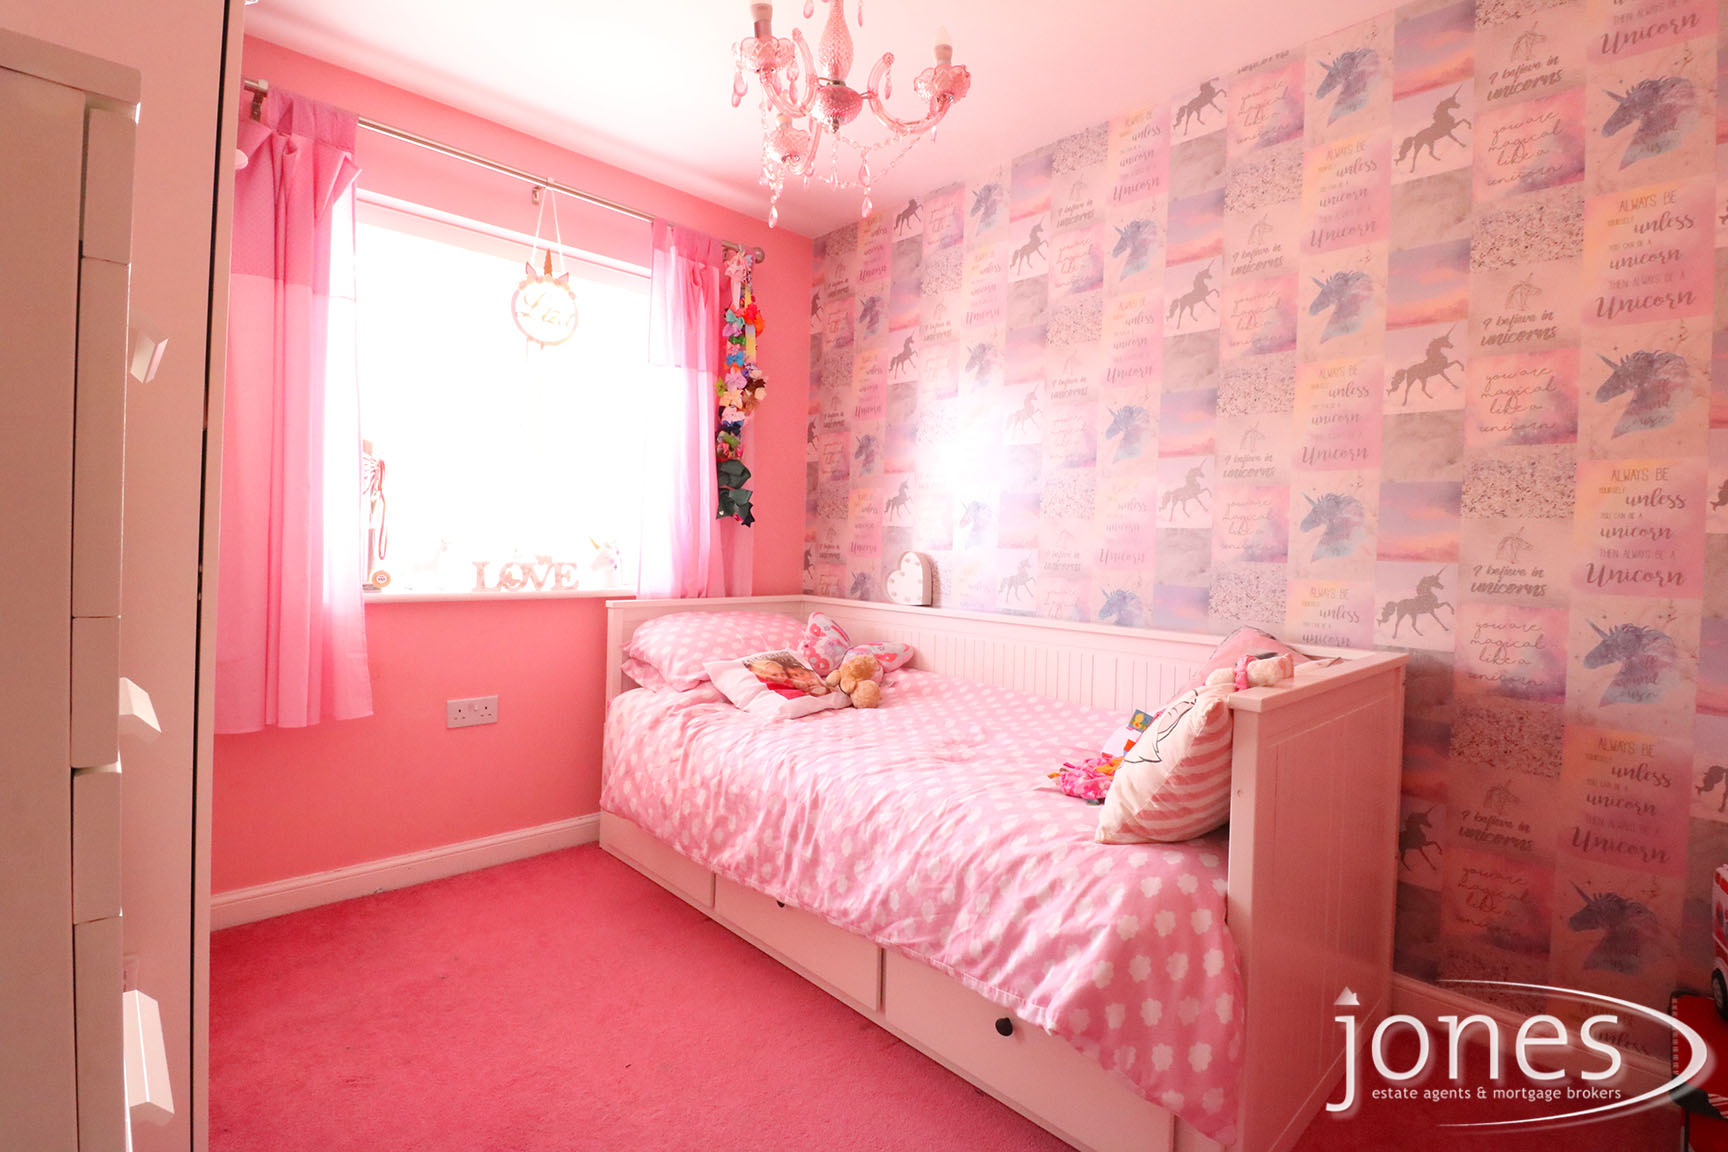 Home for Sale Let - Photo 08 Aristotle Drive, Stockton on Tees,  TS19 8GH